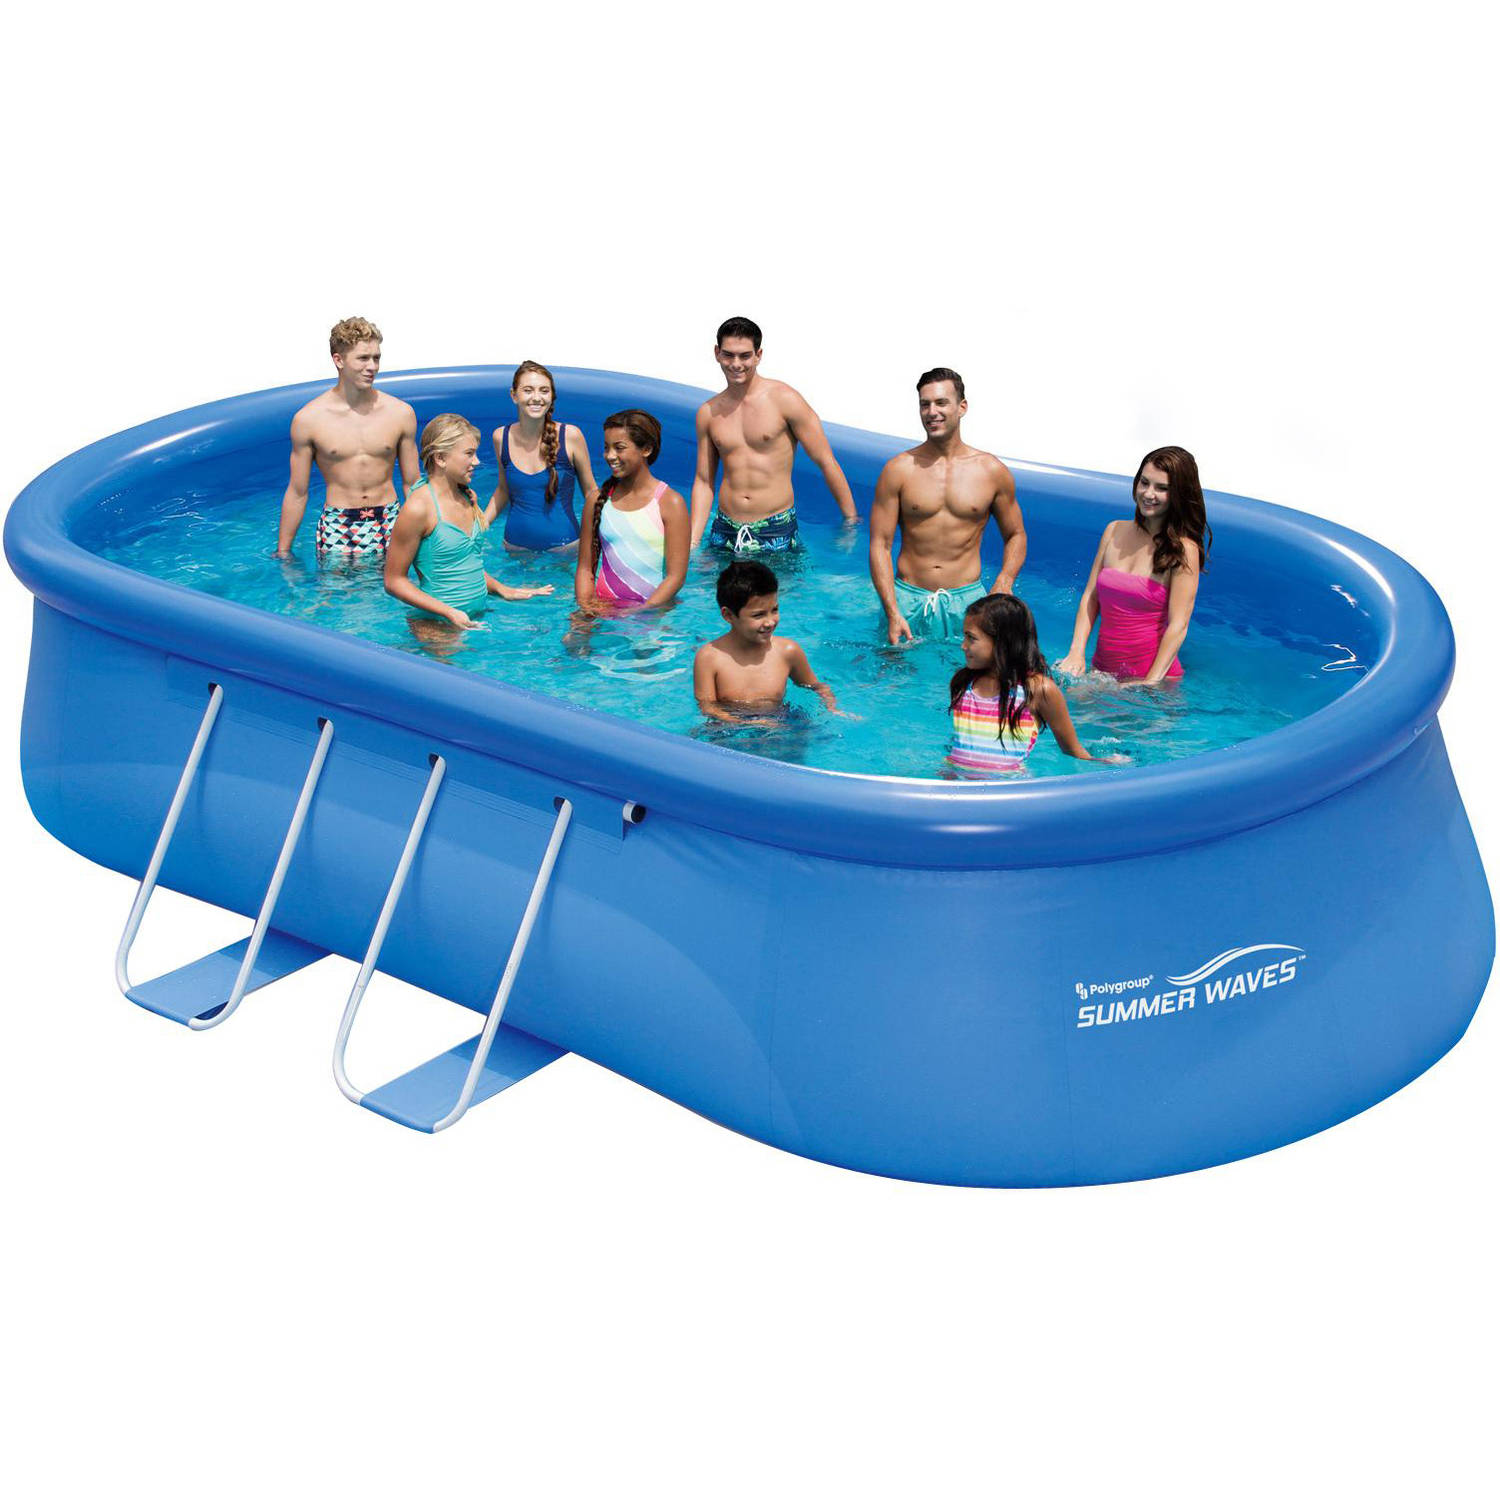 """Summer Waves 18' x 10' x 42"""" Quick Set Oval Frame Above Ground Swimming Pool with Deluxe Accessory Set"""